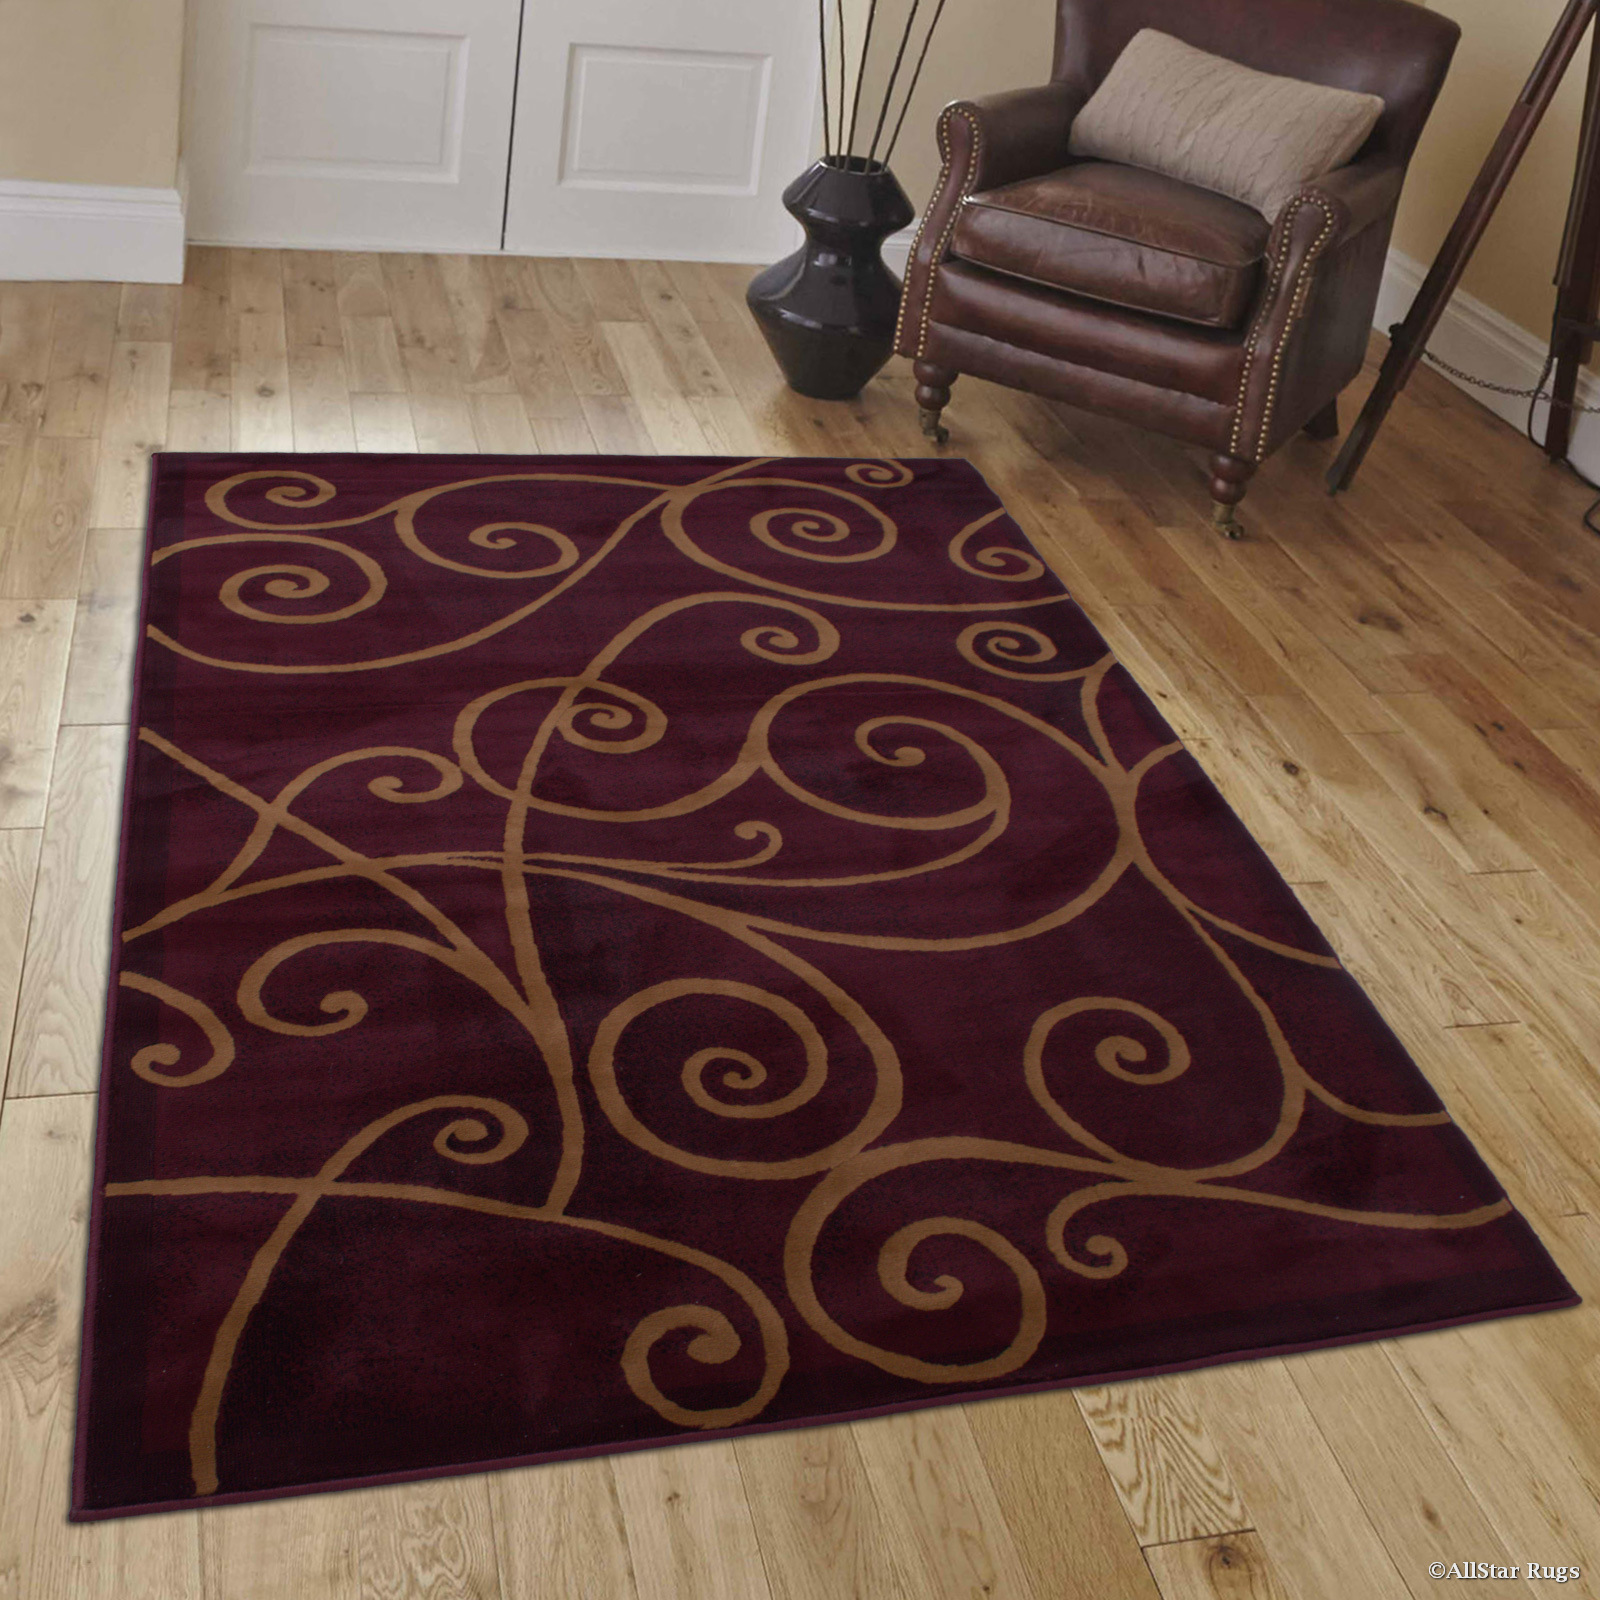 "Allstar Burgundy Abstract Modern Area Carpet Rug (5' 2"" x 7' 2"") by"